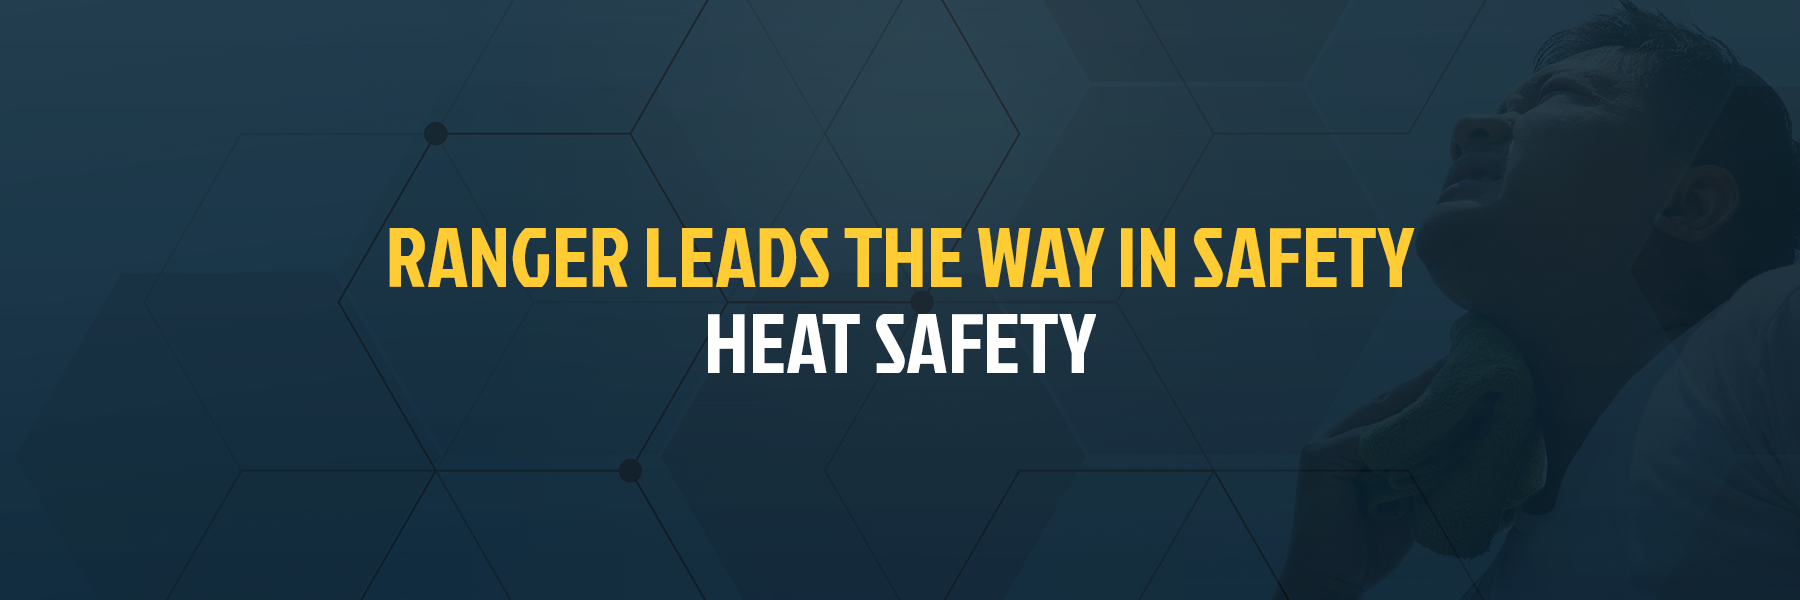 Safety Moment - Heat Safety